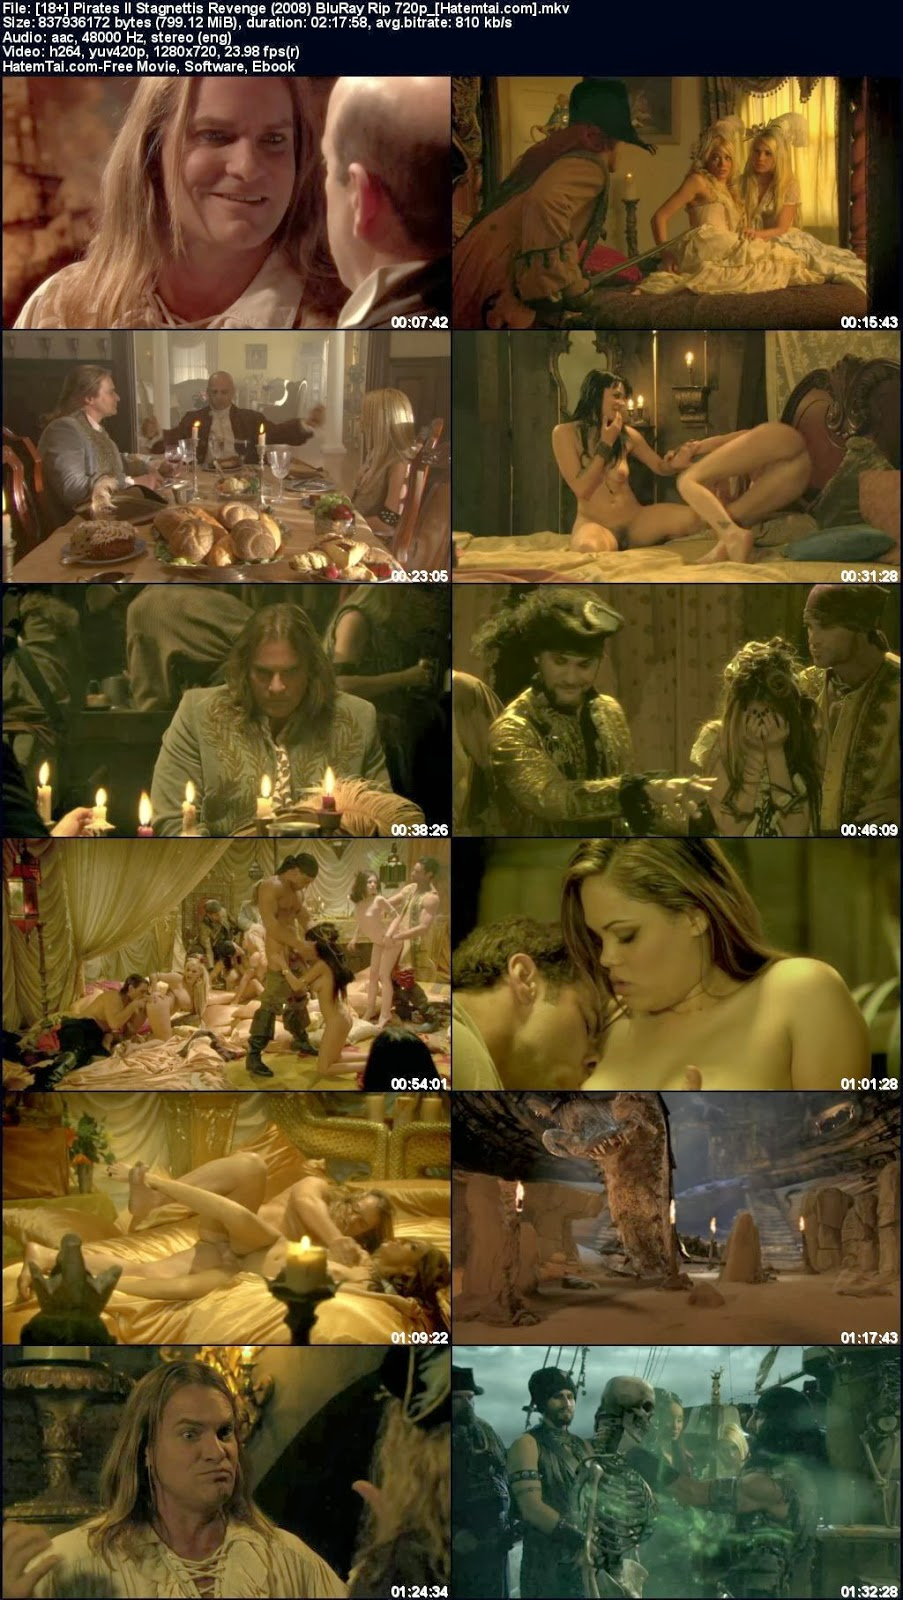 Pirates xxx movie sex scenes in 3gp nude photo